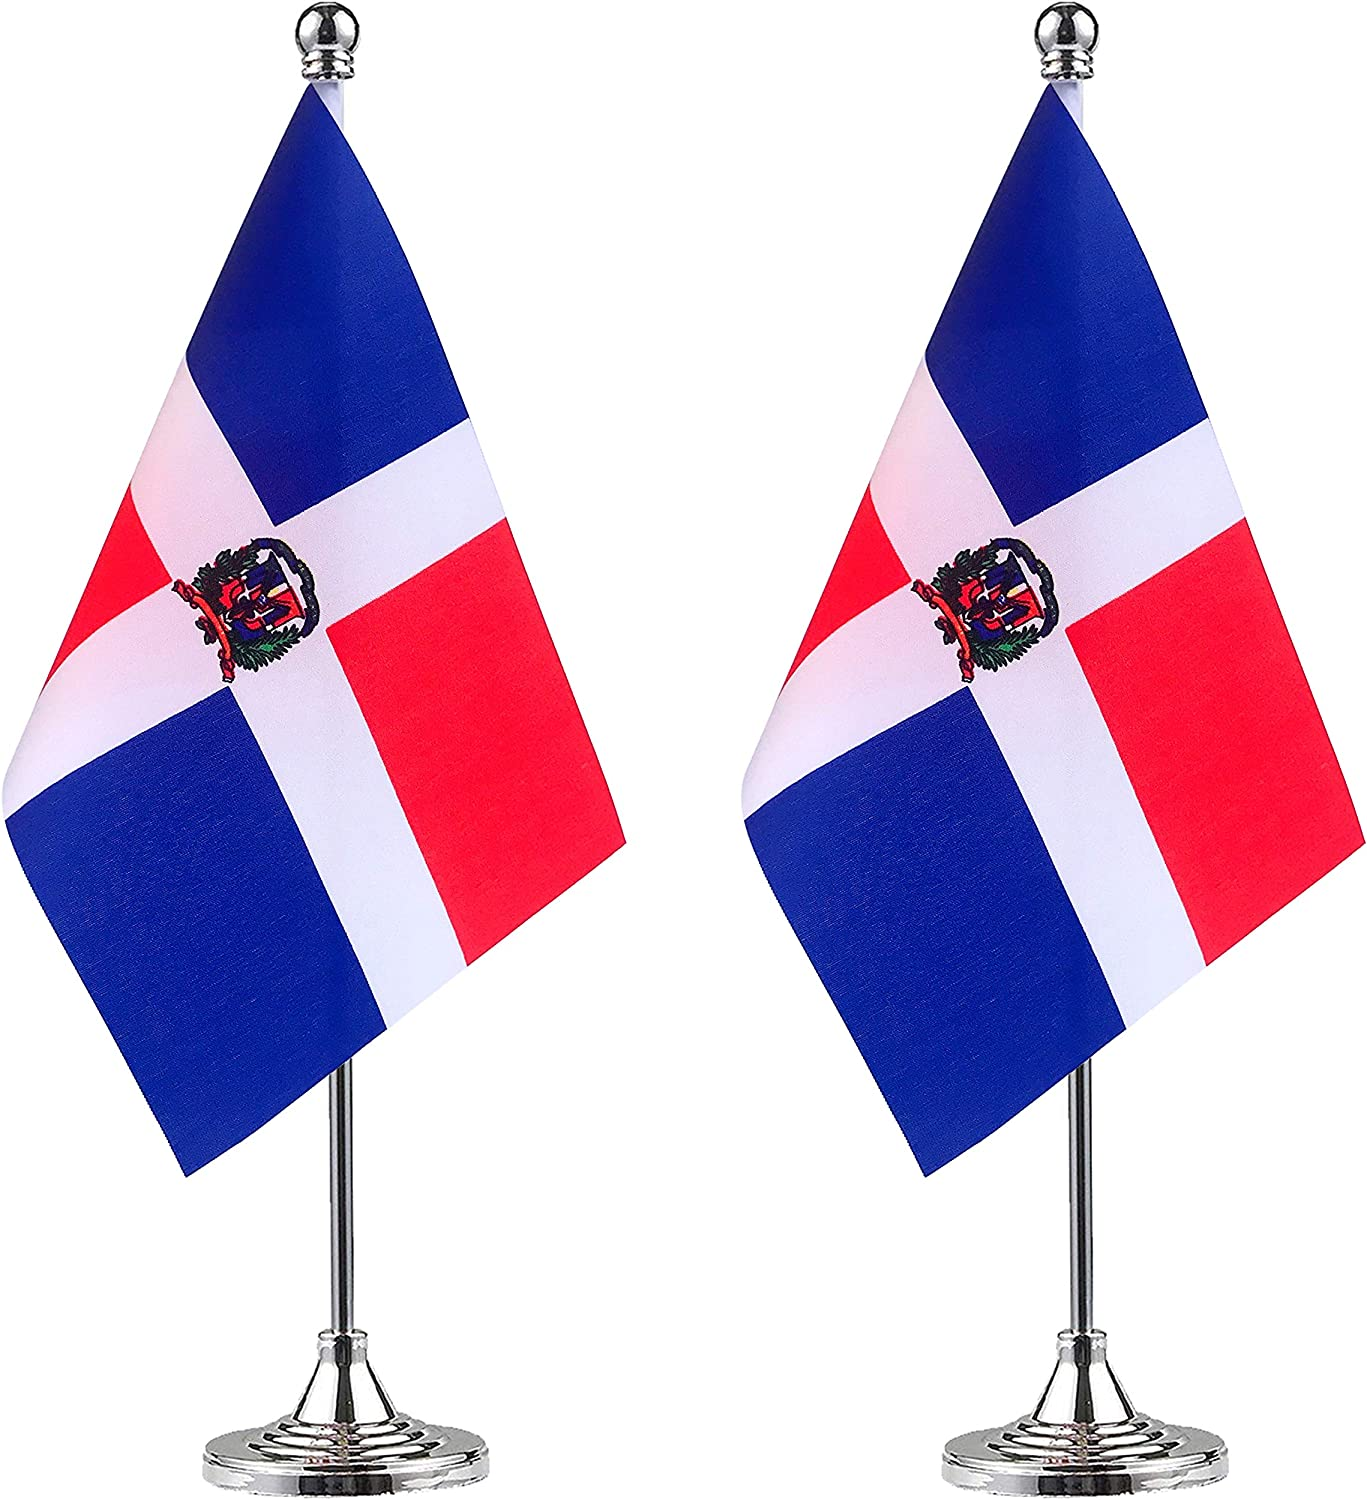 WEITBF Dominica Desk Flag Small Mini Dominican Office Table Flag with Stand Base,Dominican Themed Party Decorations Celebration Event,2 Pack: Garden & Outdoor